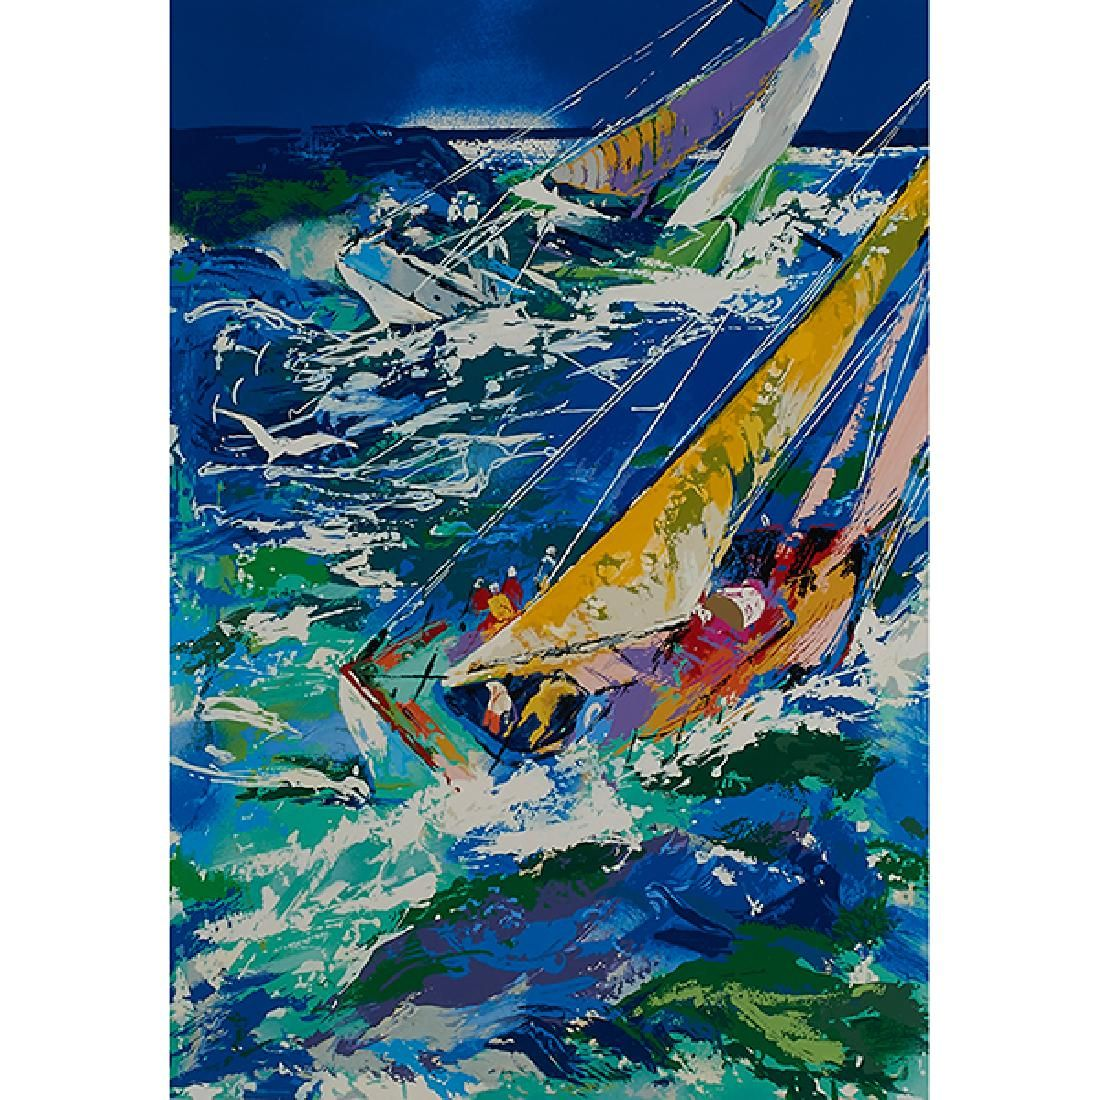 LeRoy Neiman, (American, 1921-2012), High Seas Sailing,